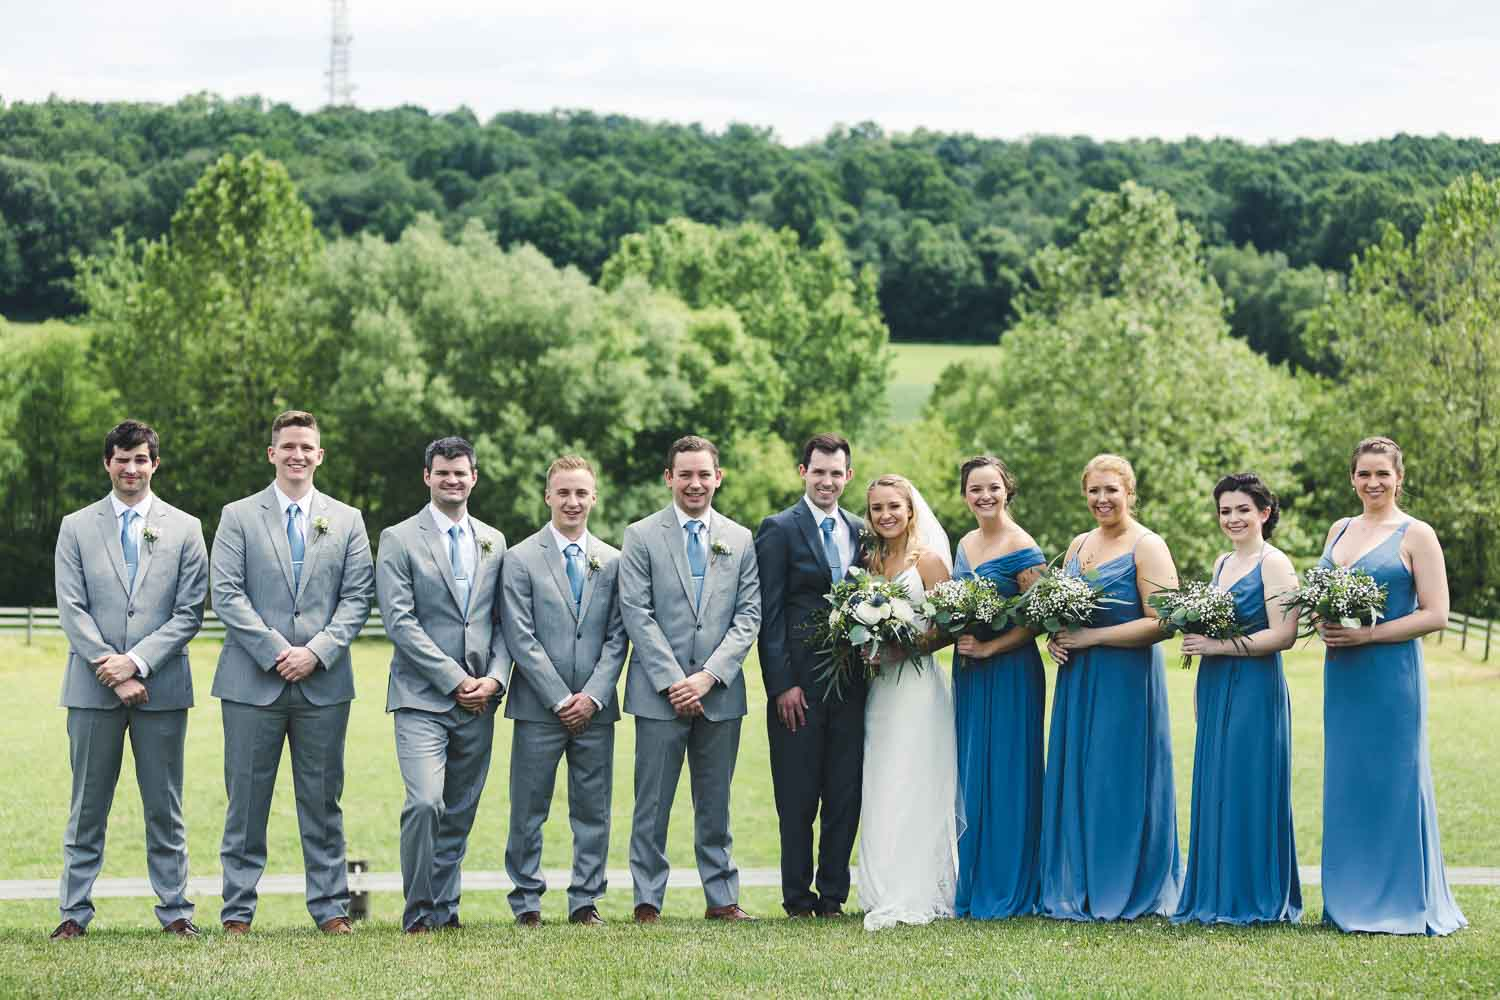 Groomsmen and Bridal party group photo